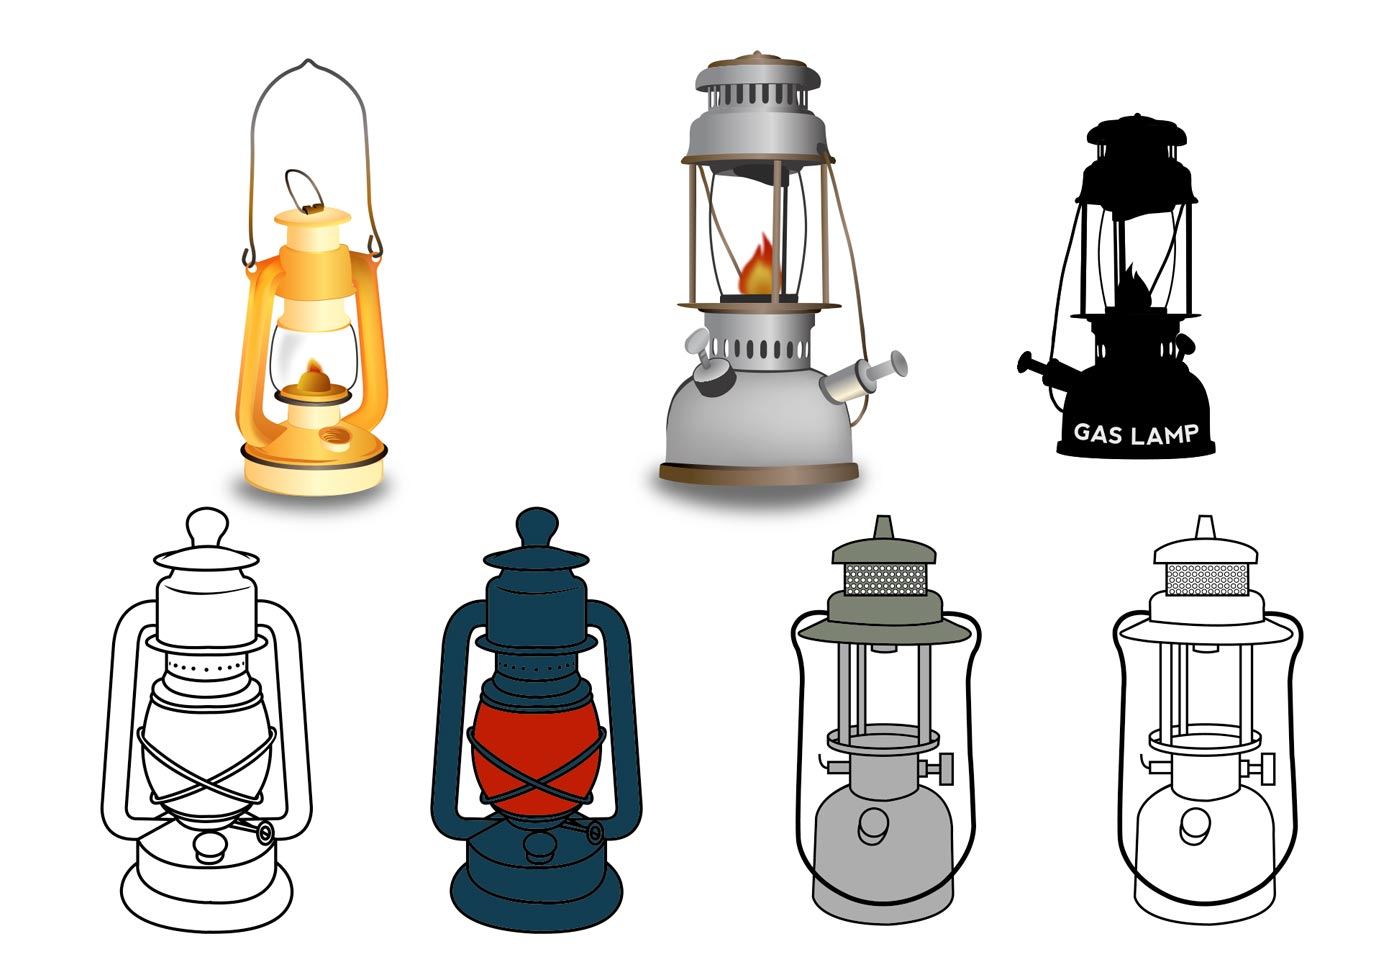 Gas Lamp Vectors Download Free Vector Art Stock